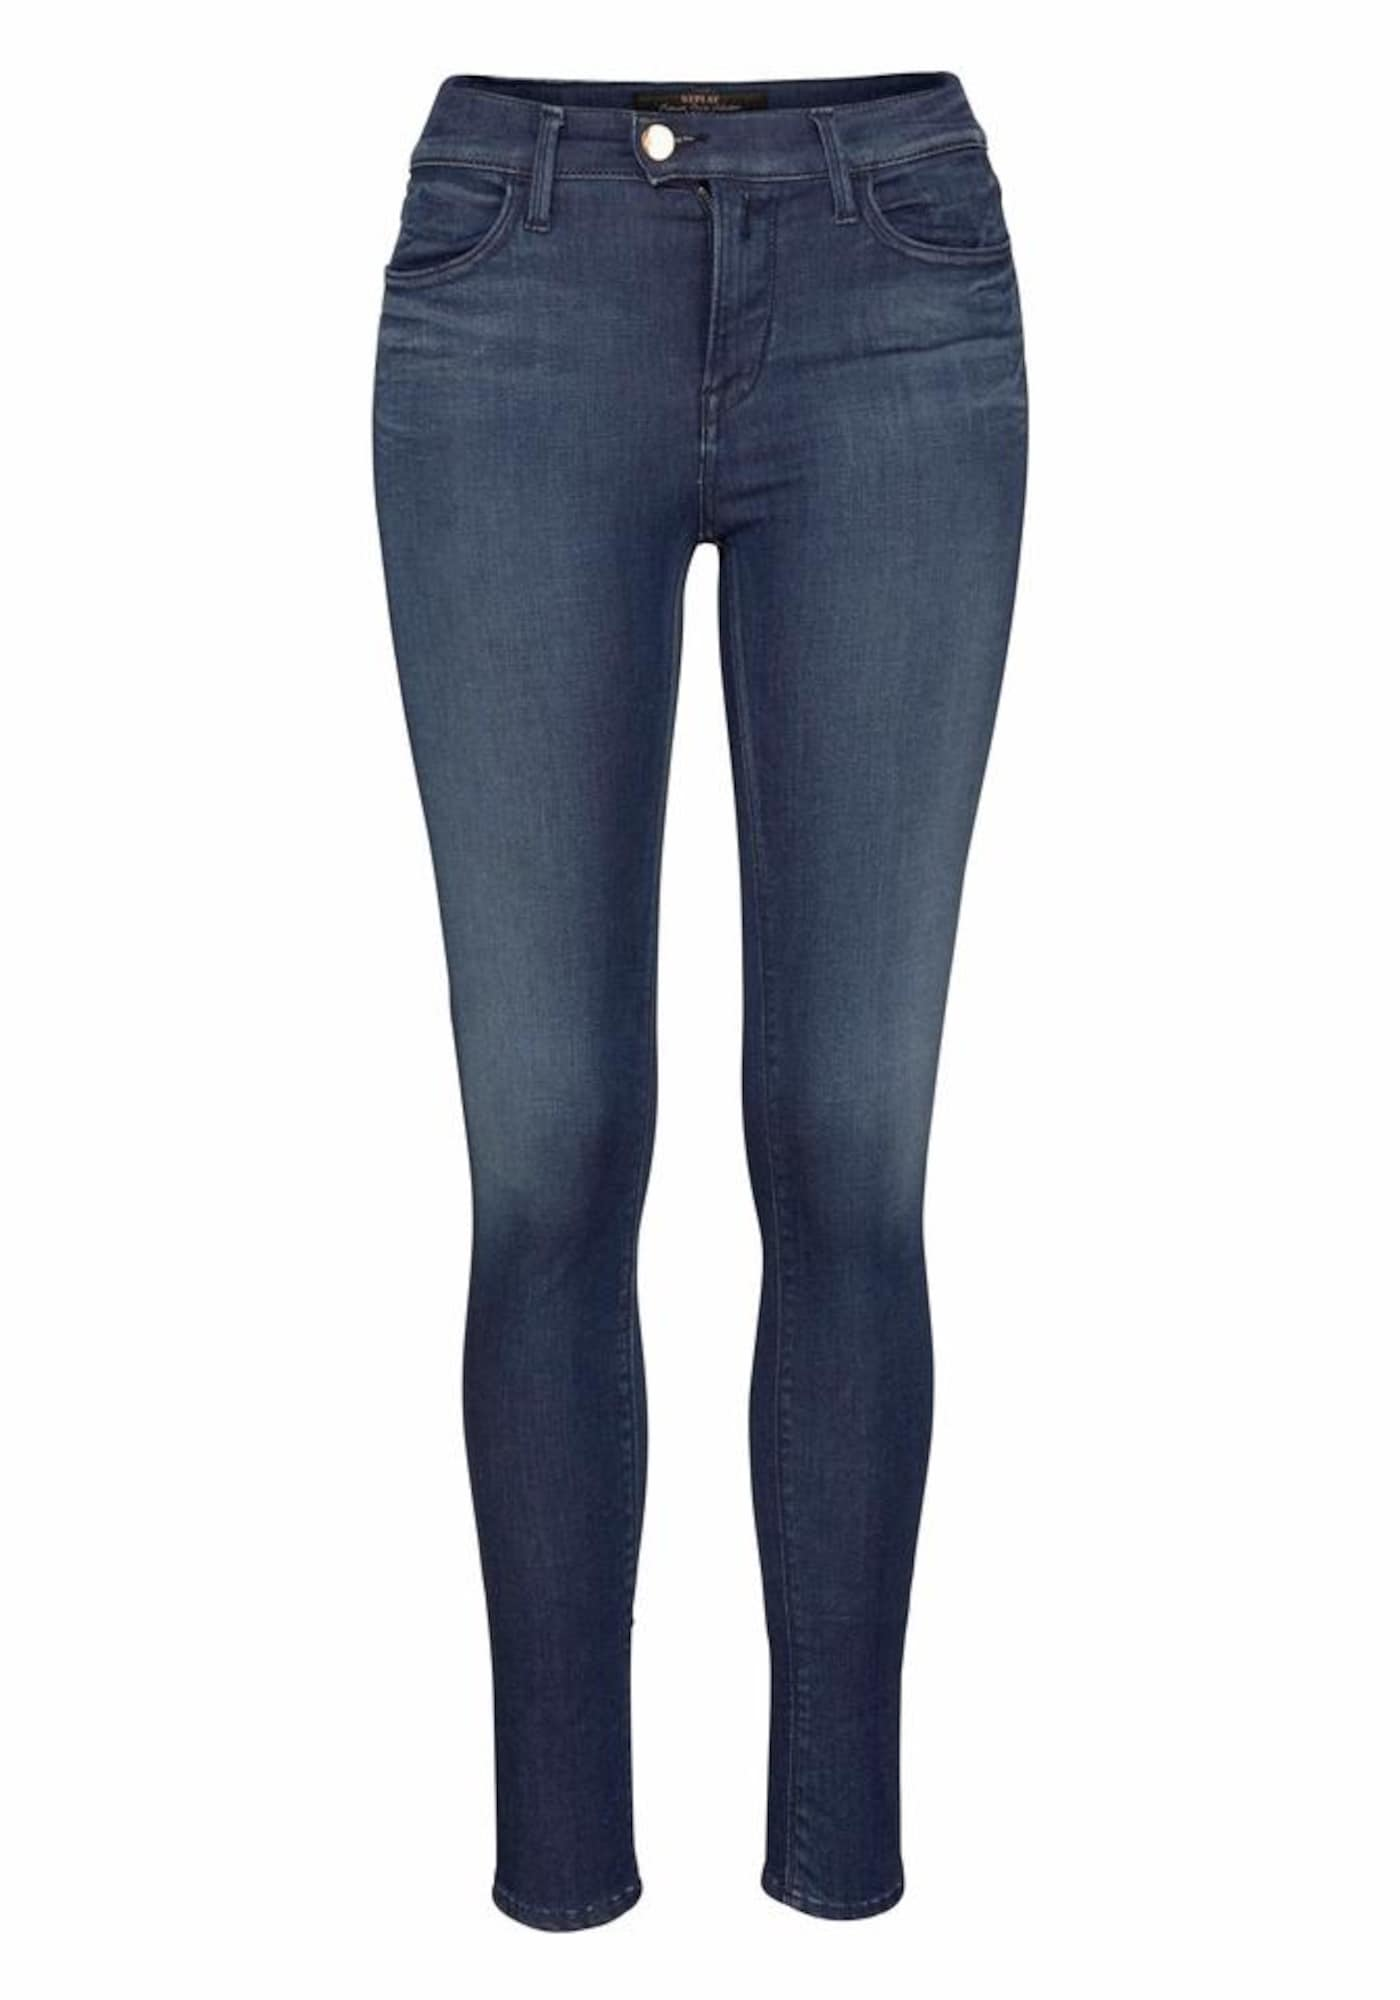 REPLAY Dames Jeans TOUCH Mid donkerblauw